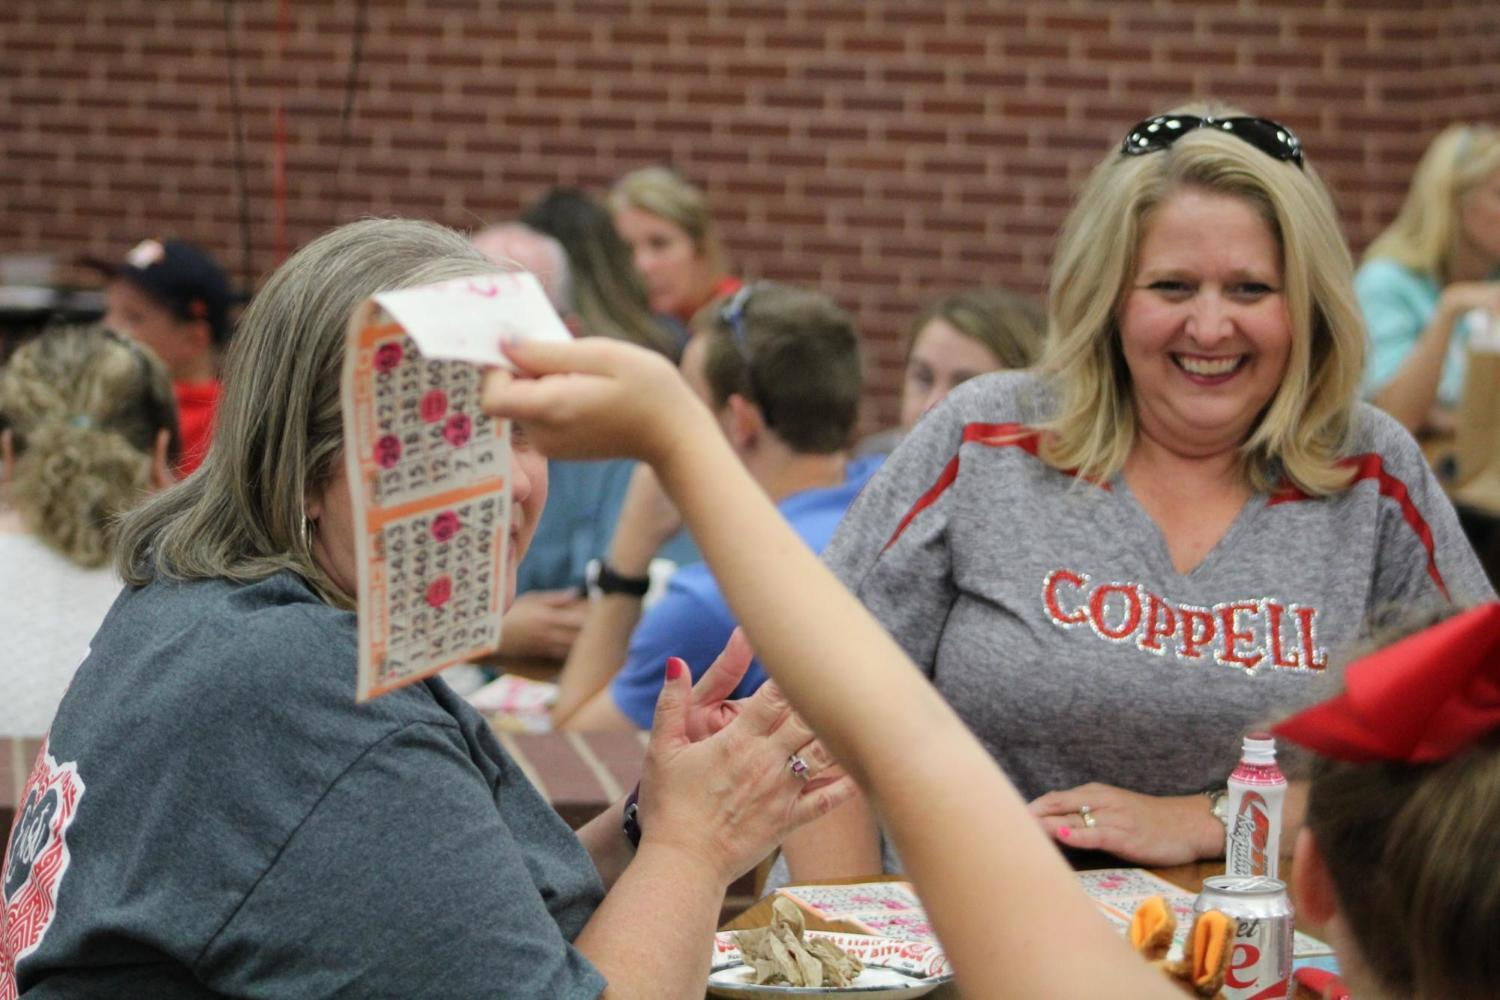 Cheer Bingo's round three winner Lisa Pehl celebrates winning the round with her friends and family on Friday night at Coppell High School during the cheerleaders annual bingo fundraiser. The event has been held for more than 20 years and helps raise funds for the cheerleading program.